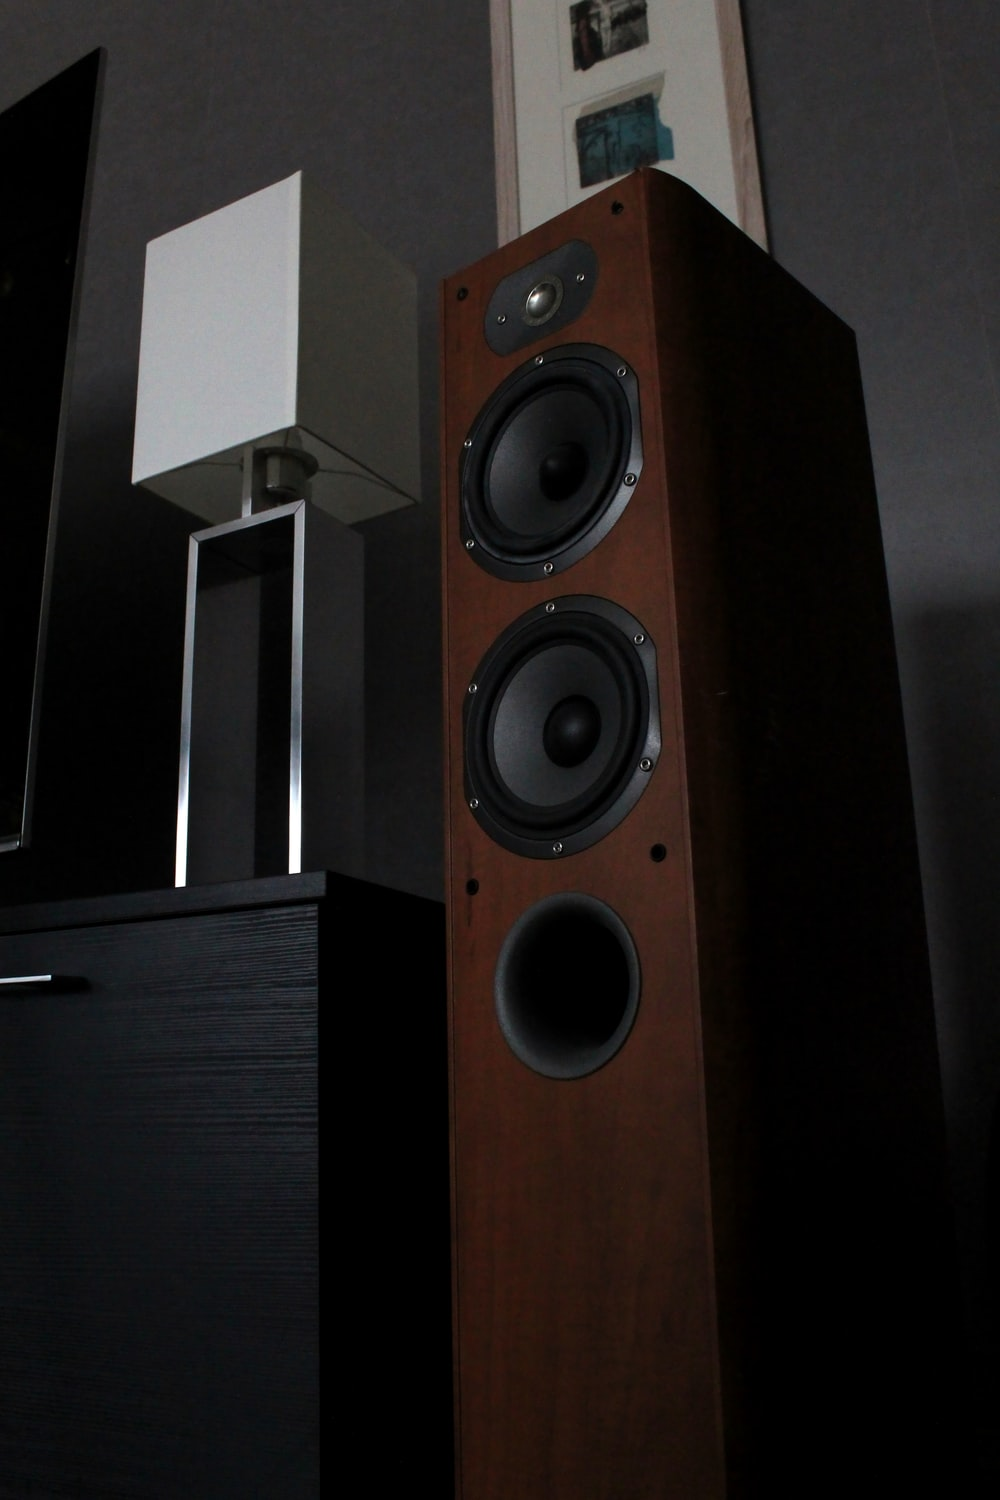 black and silver speaker on brown wooden cabinet